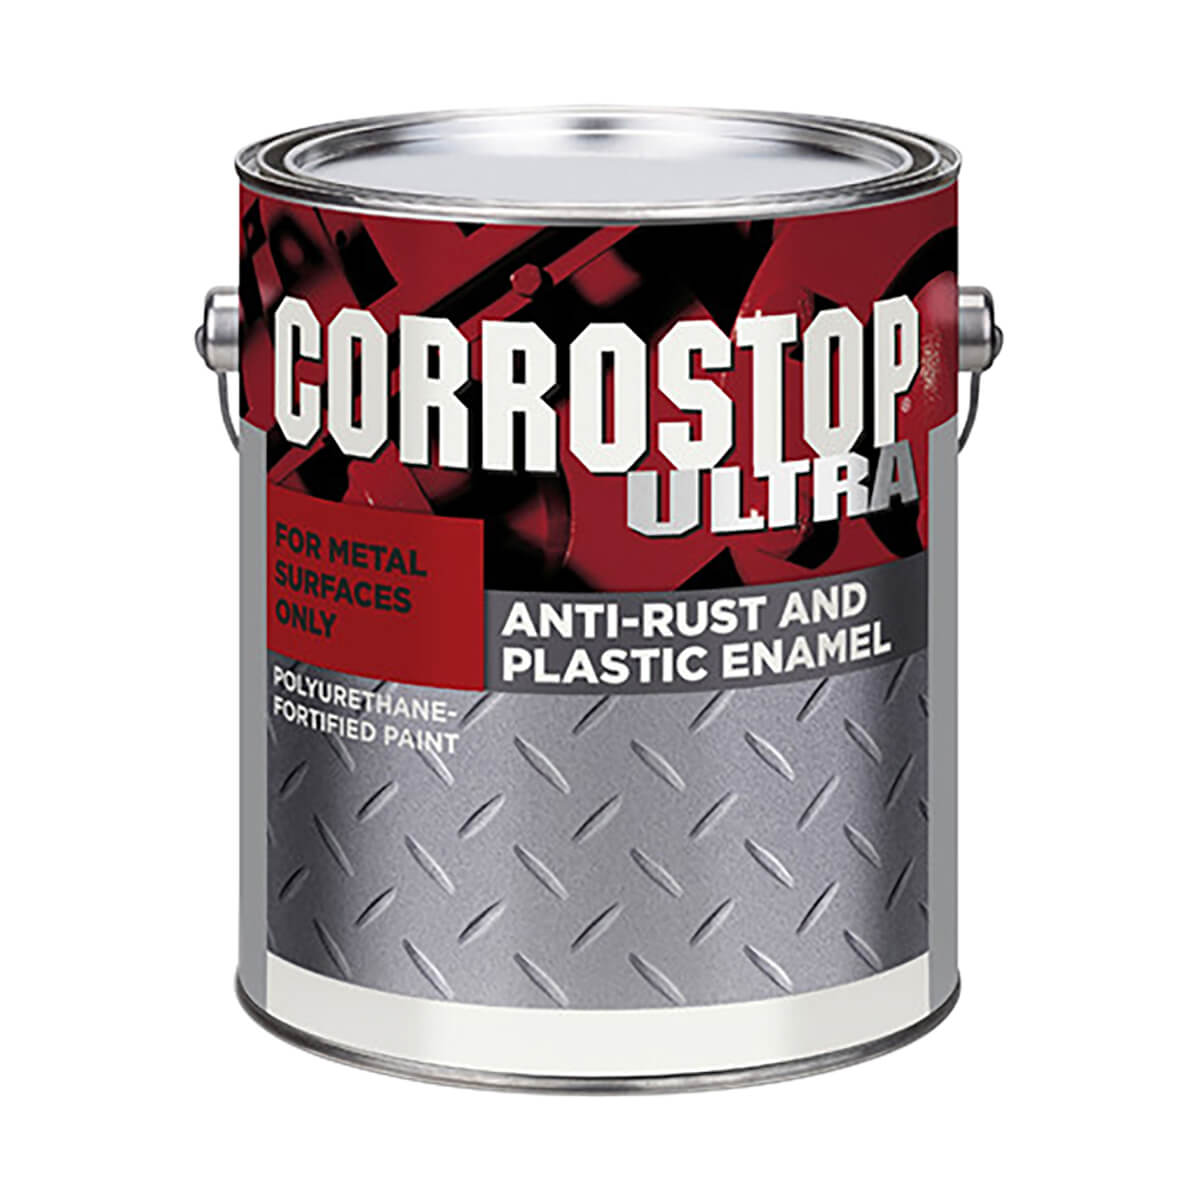 Corrostop - Anti-rust Alkyd Paint - Forest Green - 3.78 L